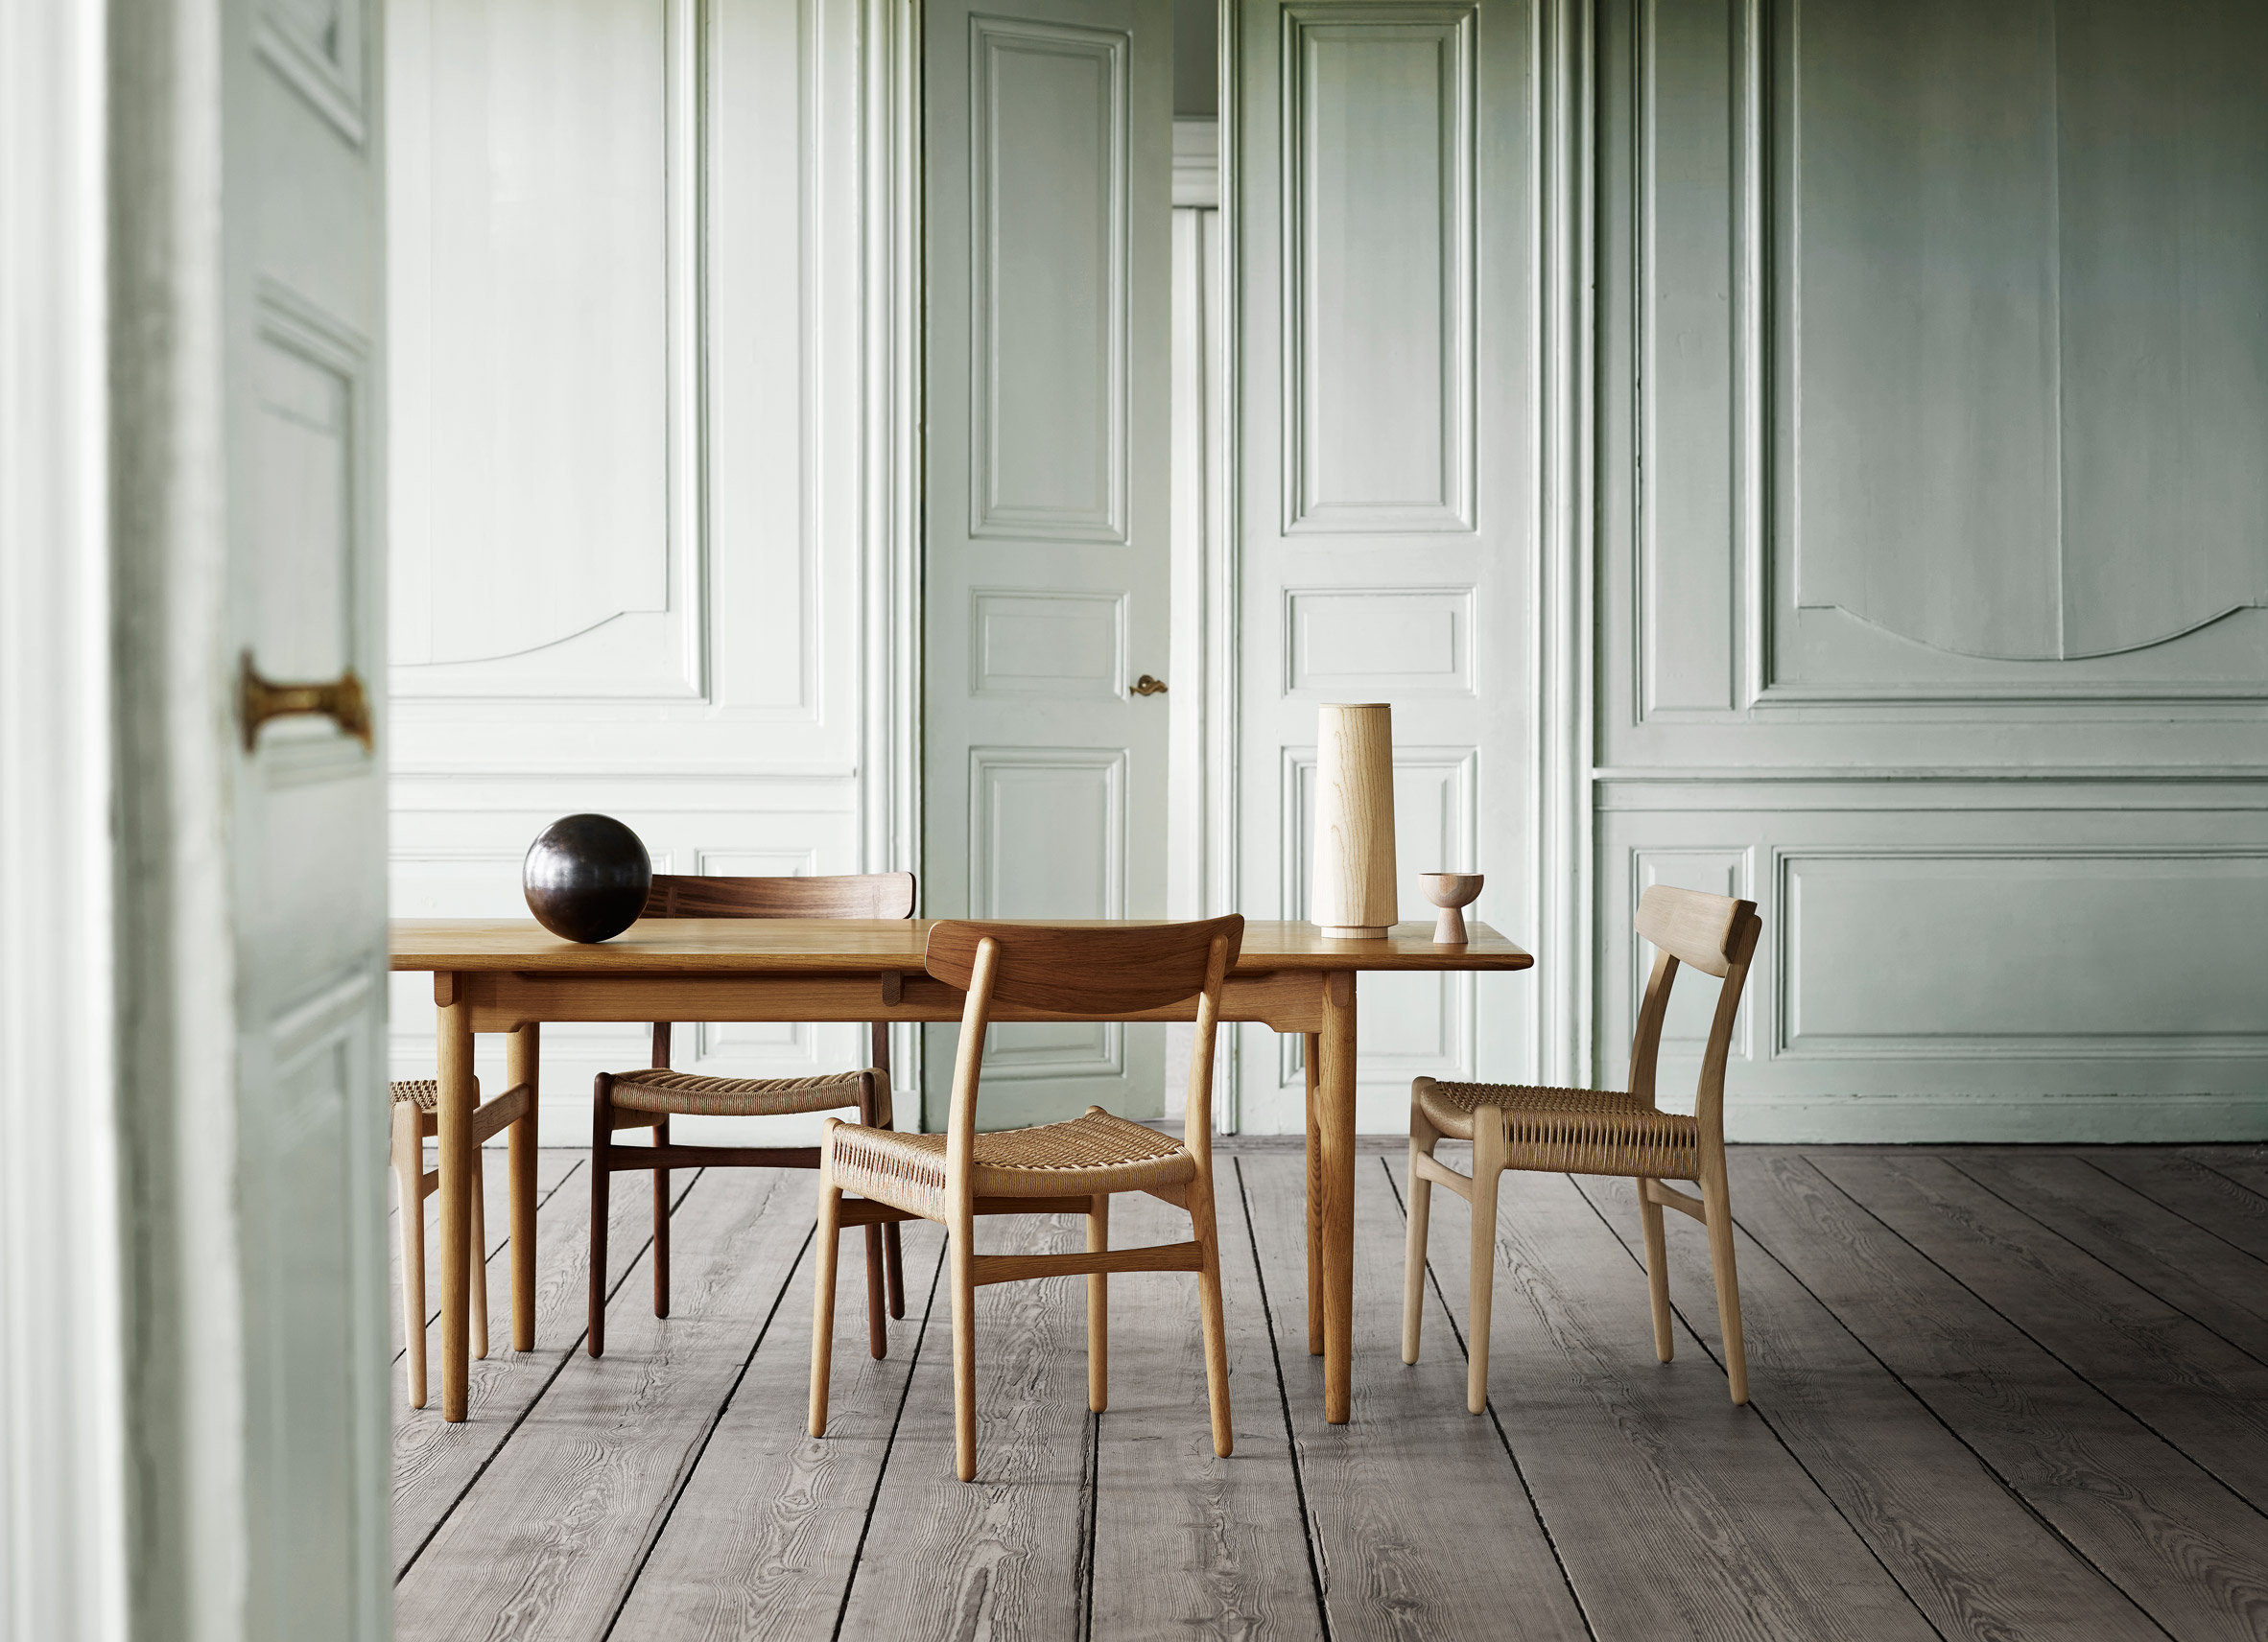 Carl Hansen & Son Re-Releases Final Chair from Hans J Wegner Collection hans j wegner collection Carl Hansen & Son Releases Final Chair from Hans J Wegner Collection Carl Hansen Son Re Releases Final Chair from Hans J Wegner Collection